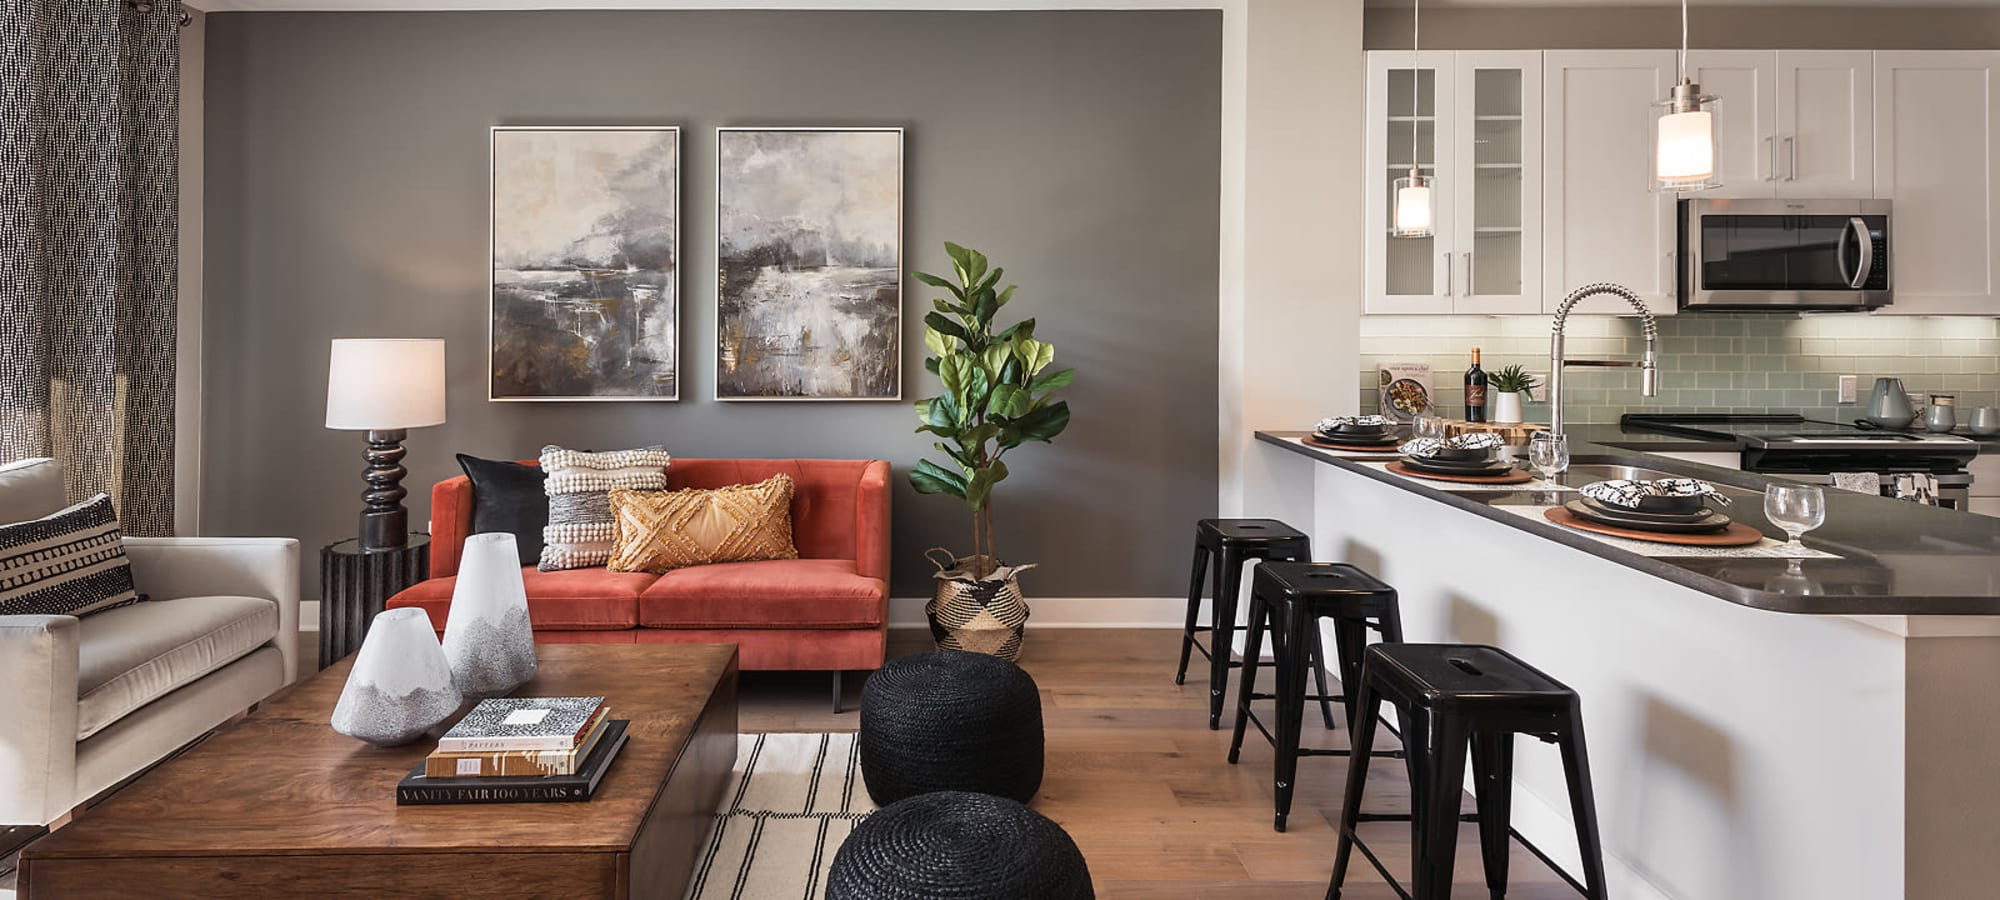 Bright living room and kitchen at The Halsten at Chauncey Lane in Scottsdale, Arizona